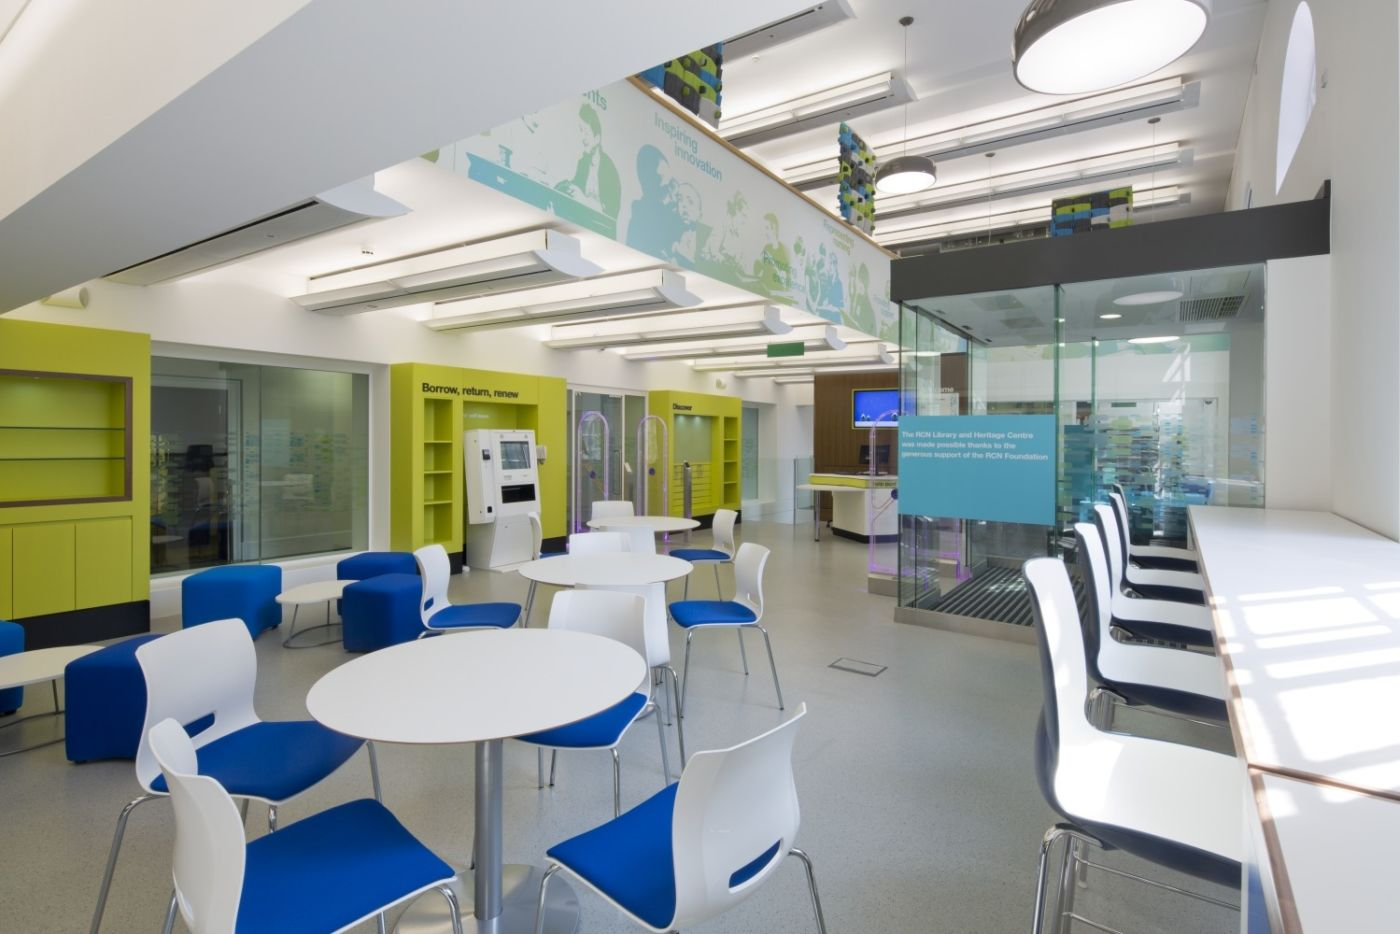 Seating area in library fit out